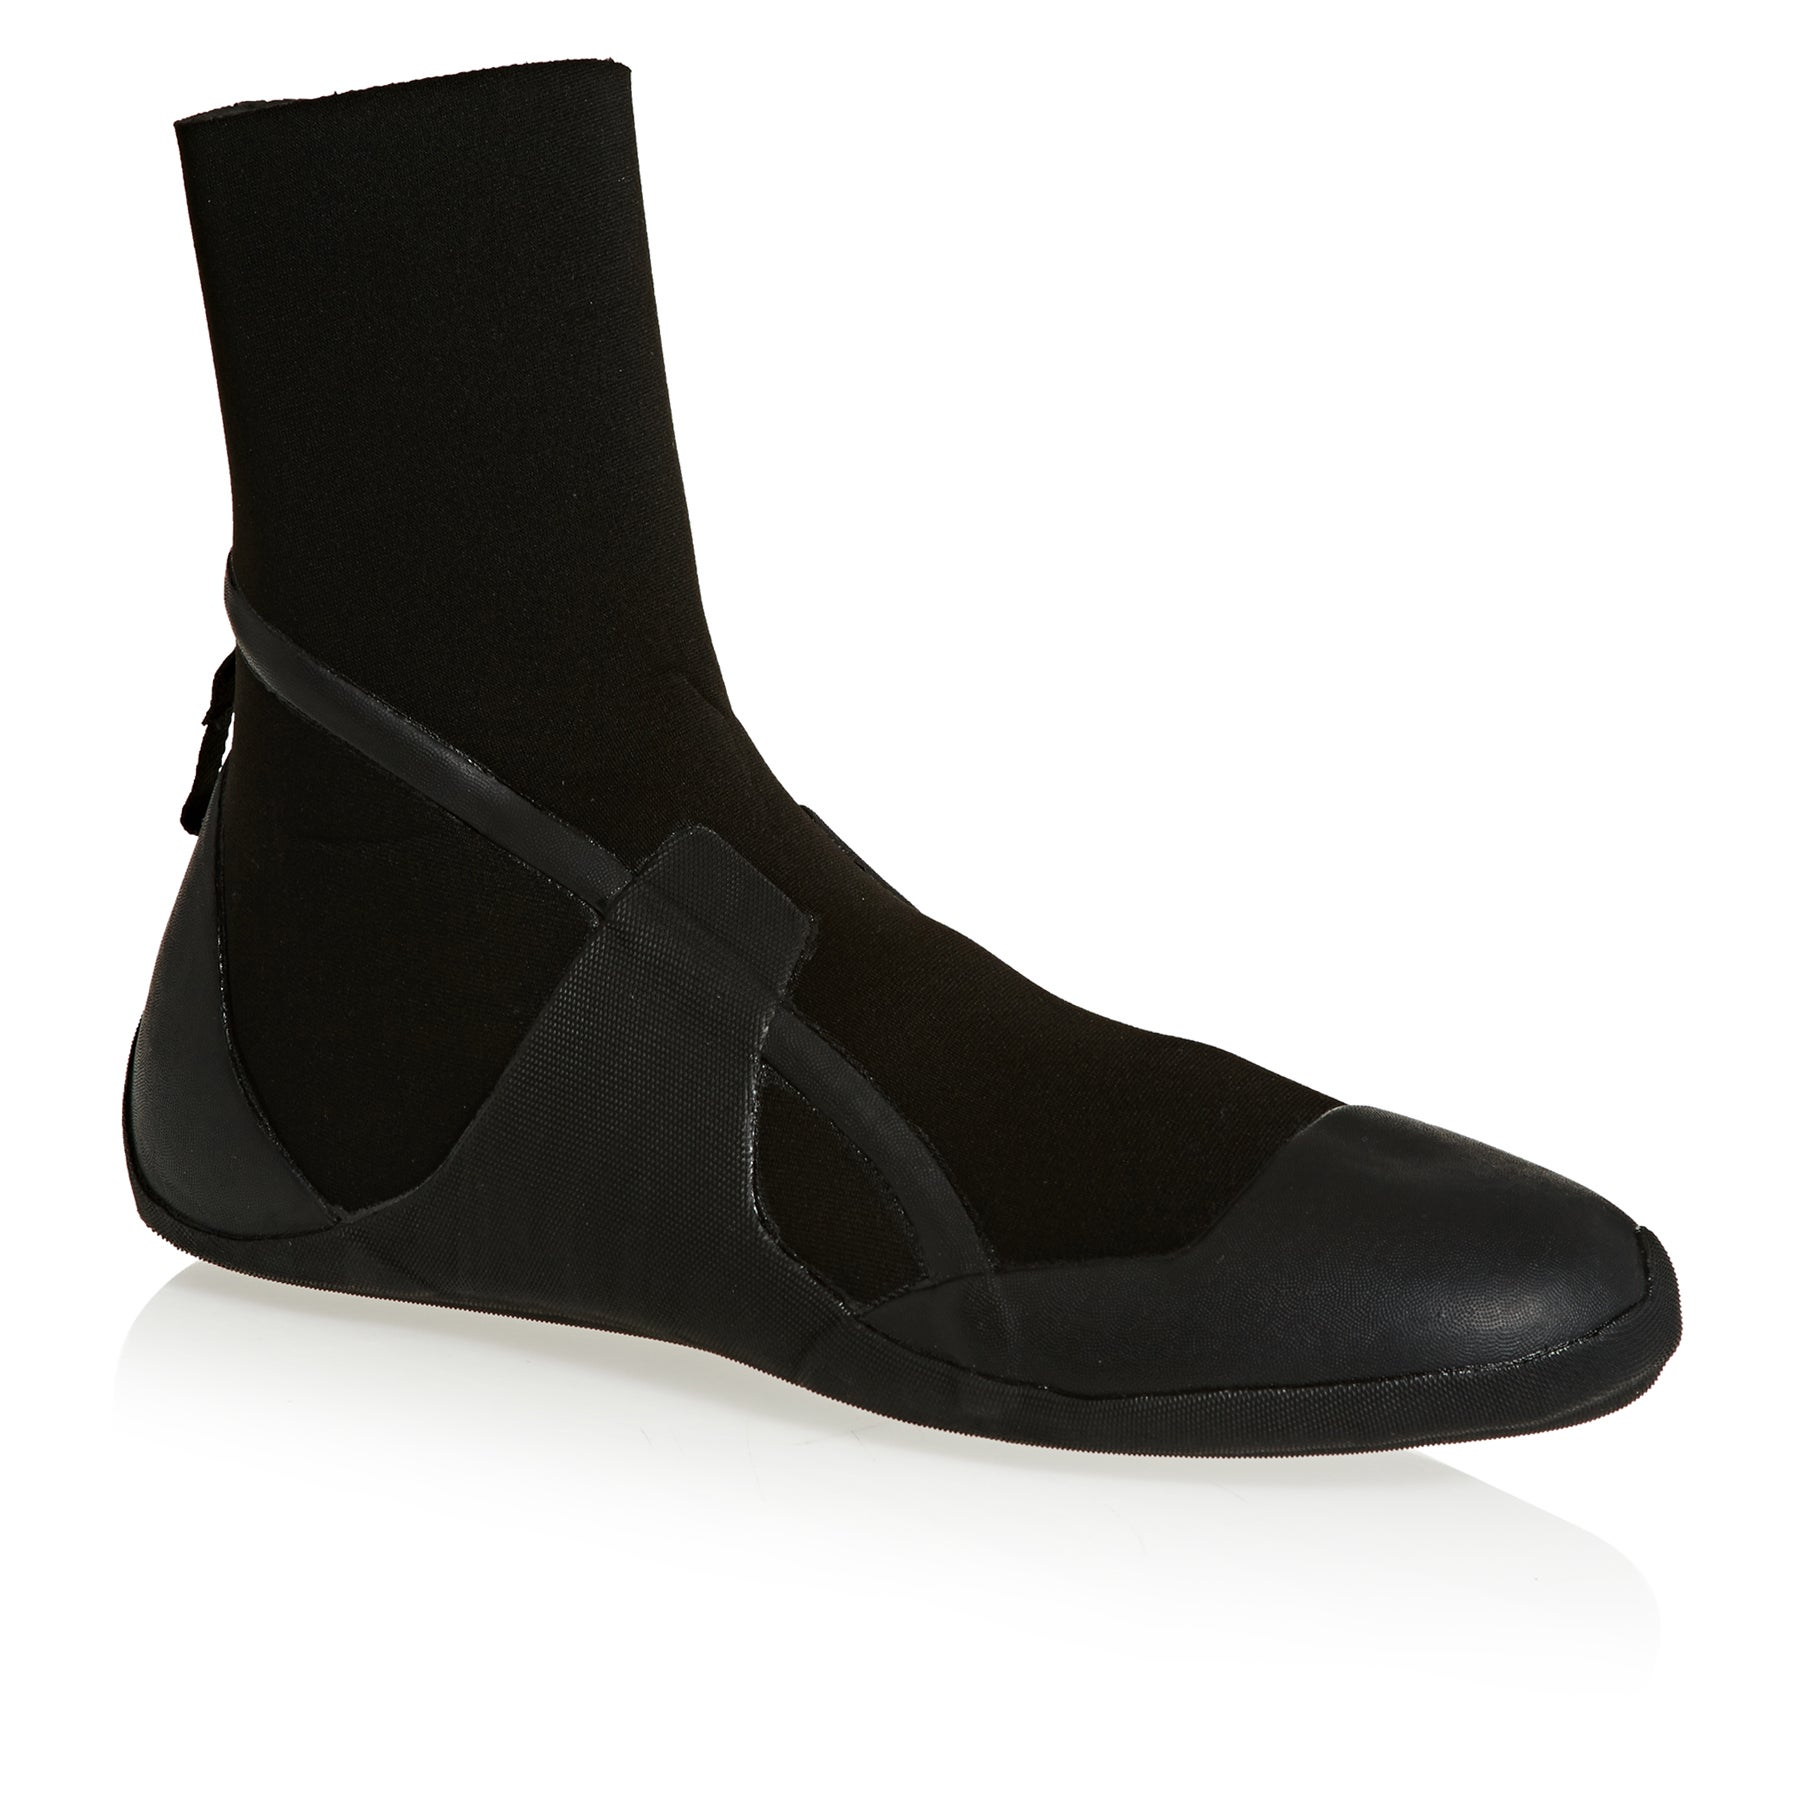 Billabong Furnace 5mm Absolute Round Toe Wetsuit Boots - Black